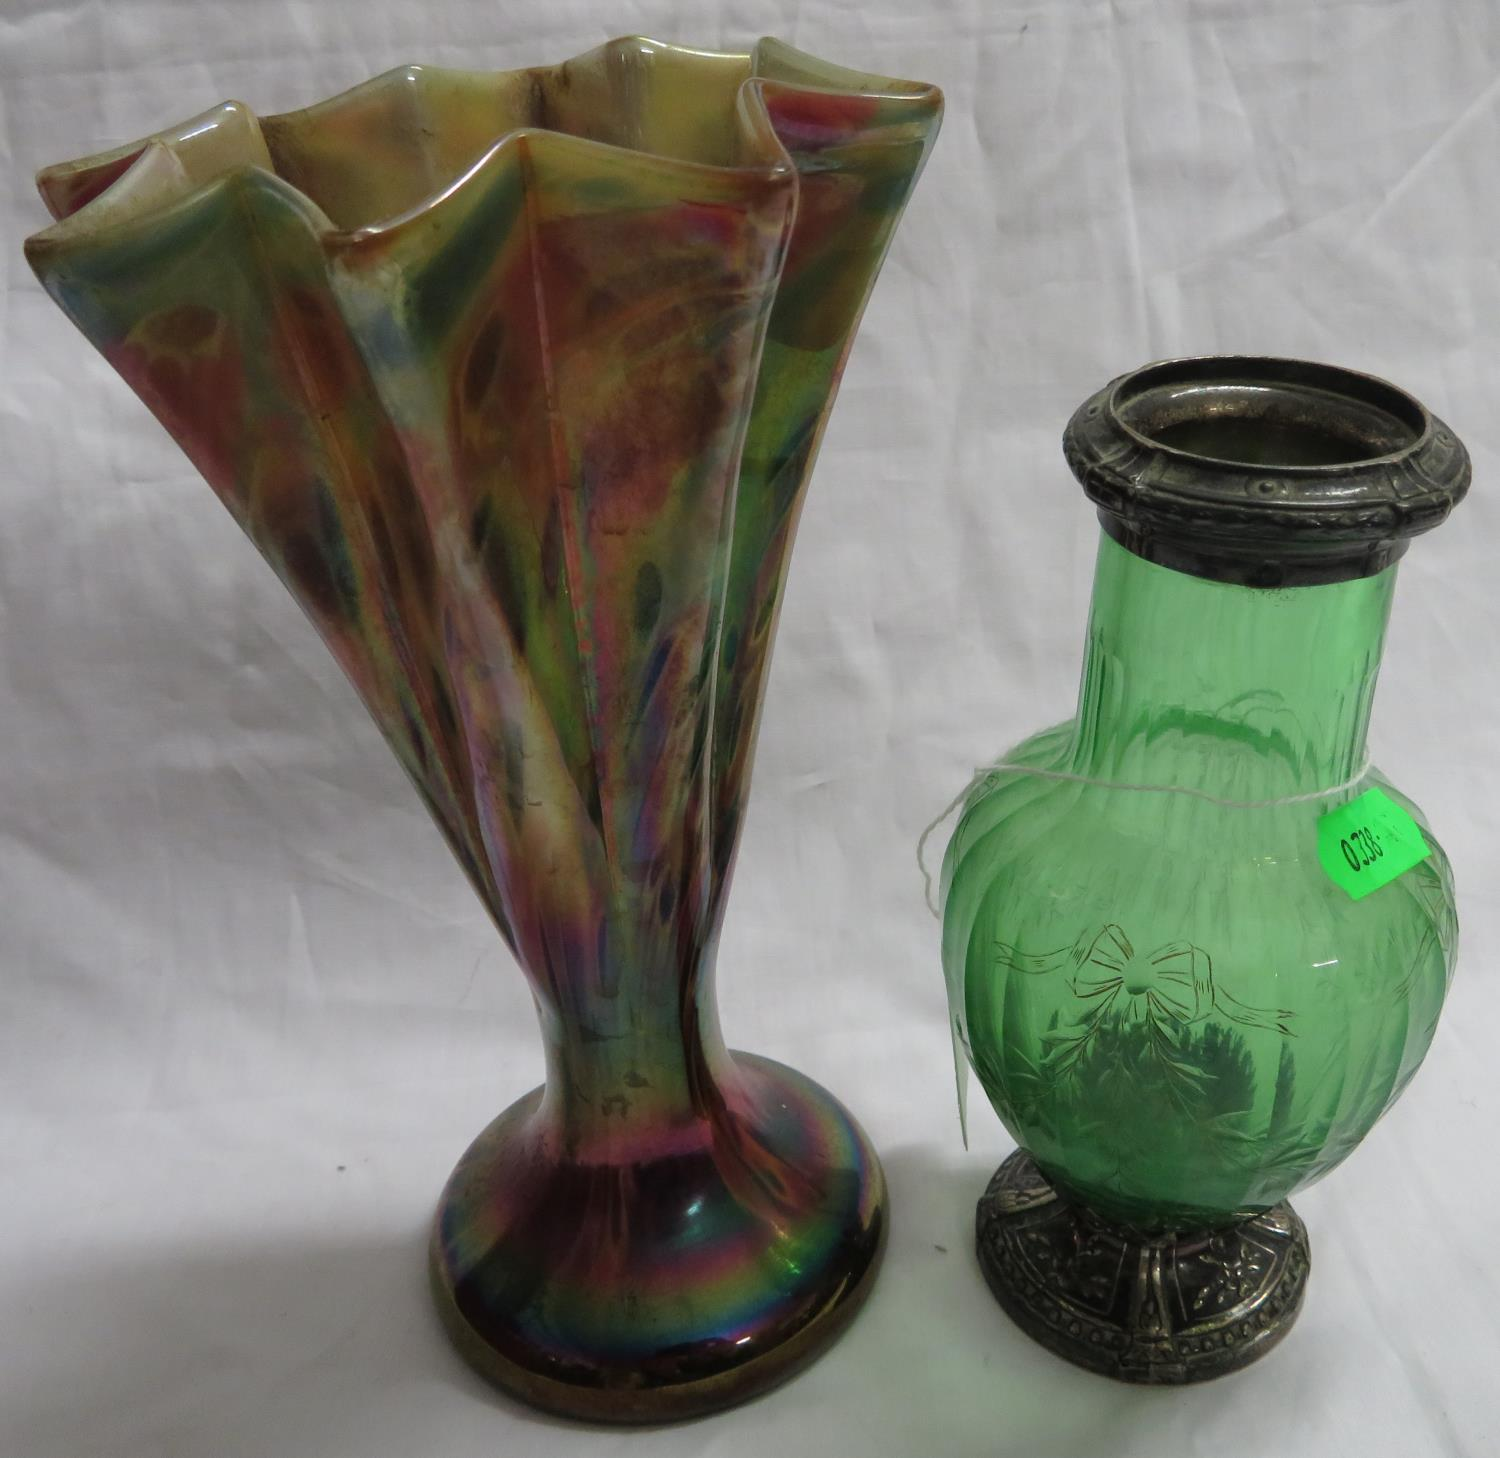 Lot 32 - Lertz?? vase and one other cut glass silver hallmarked rimmed vase